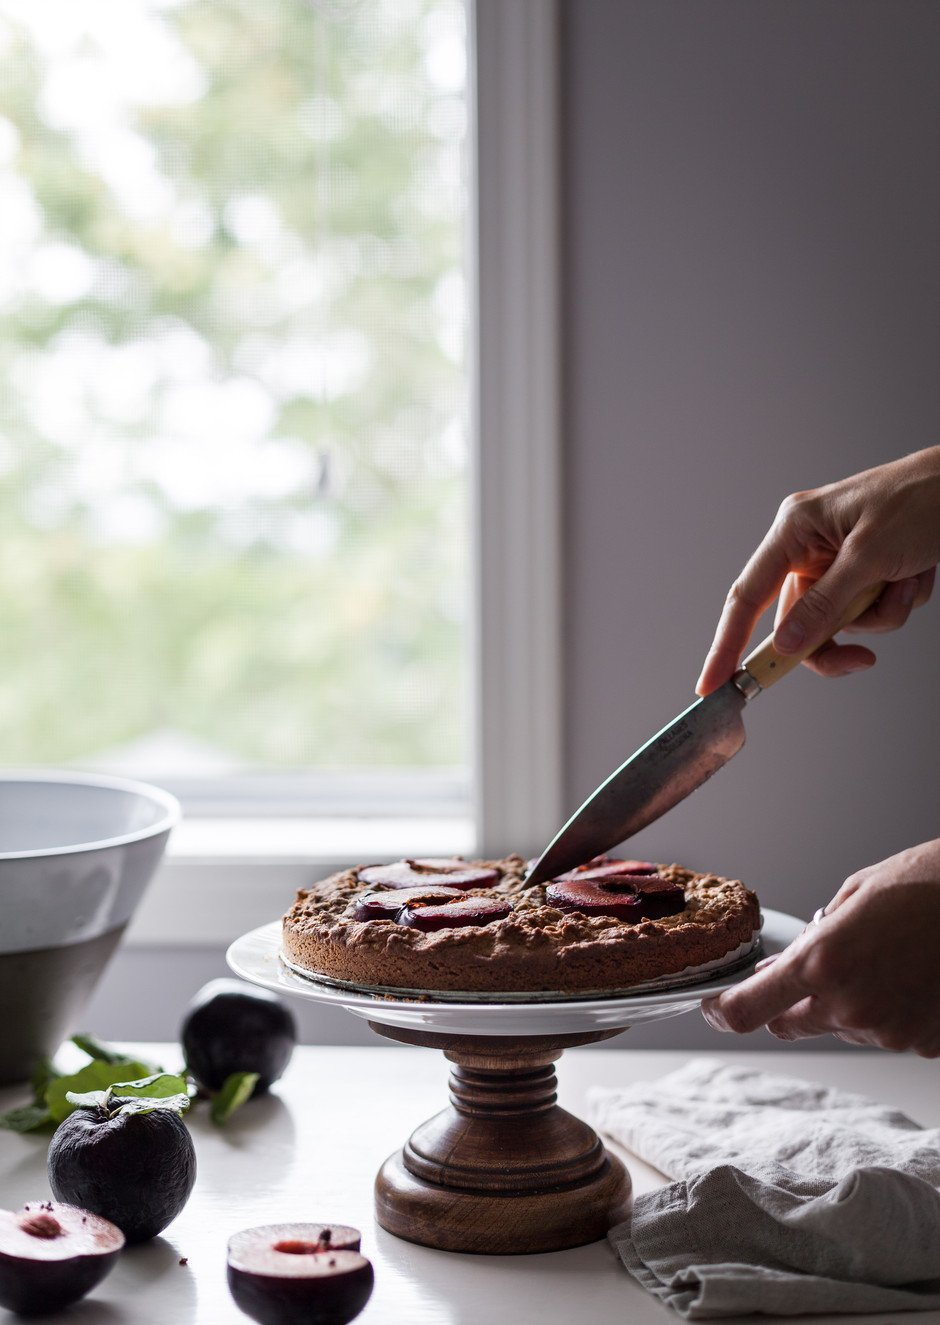 portrait of a hand holding a knife cutting a cake on a cake stand.